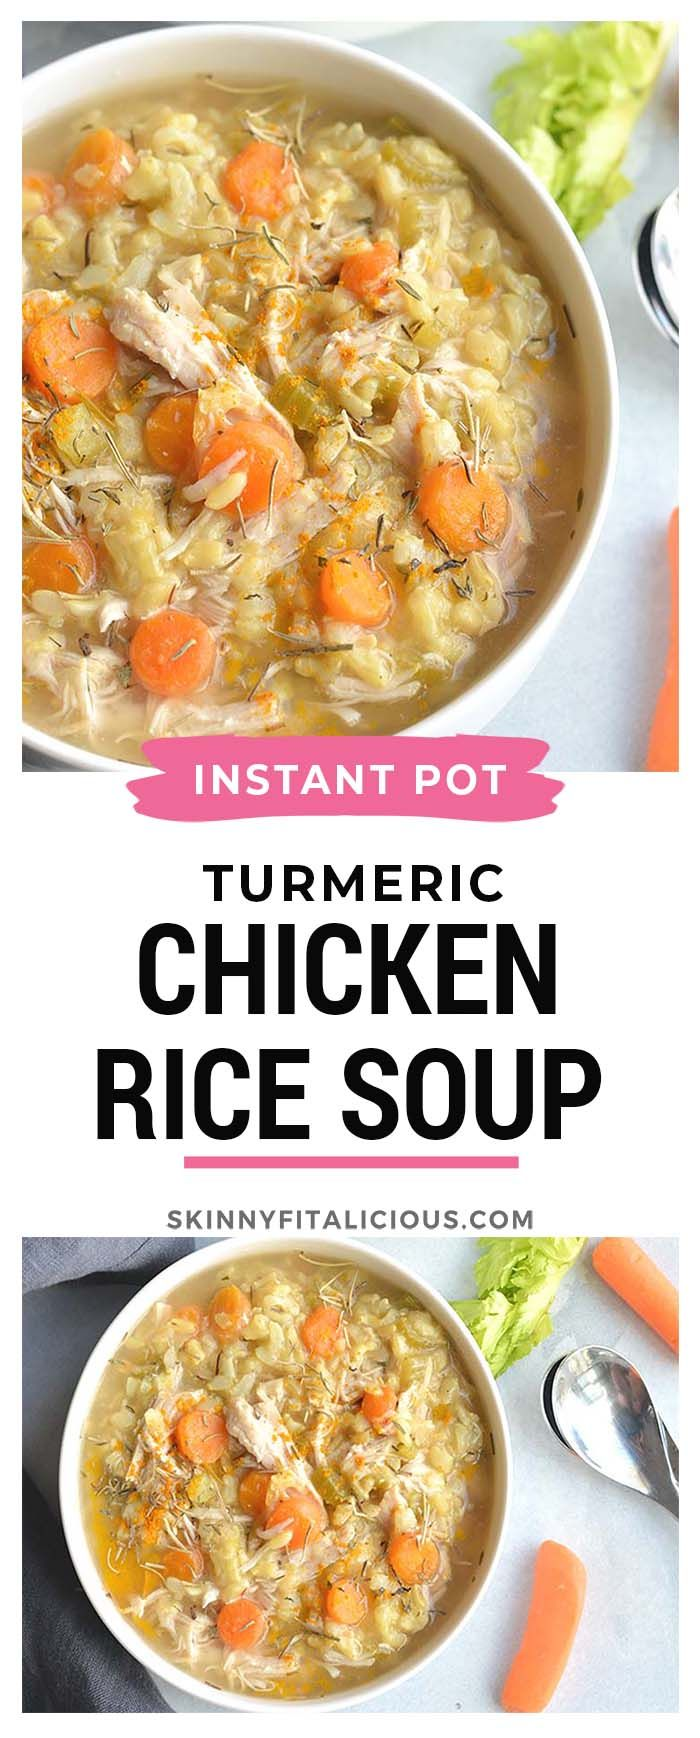 Instant Pot Turmeric Chicken Rice Soup Is The Best Traditional